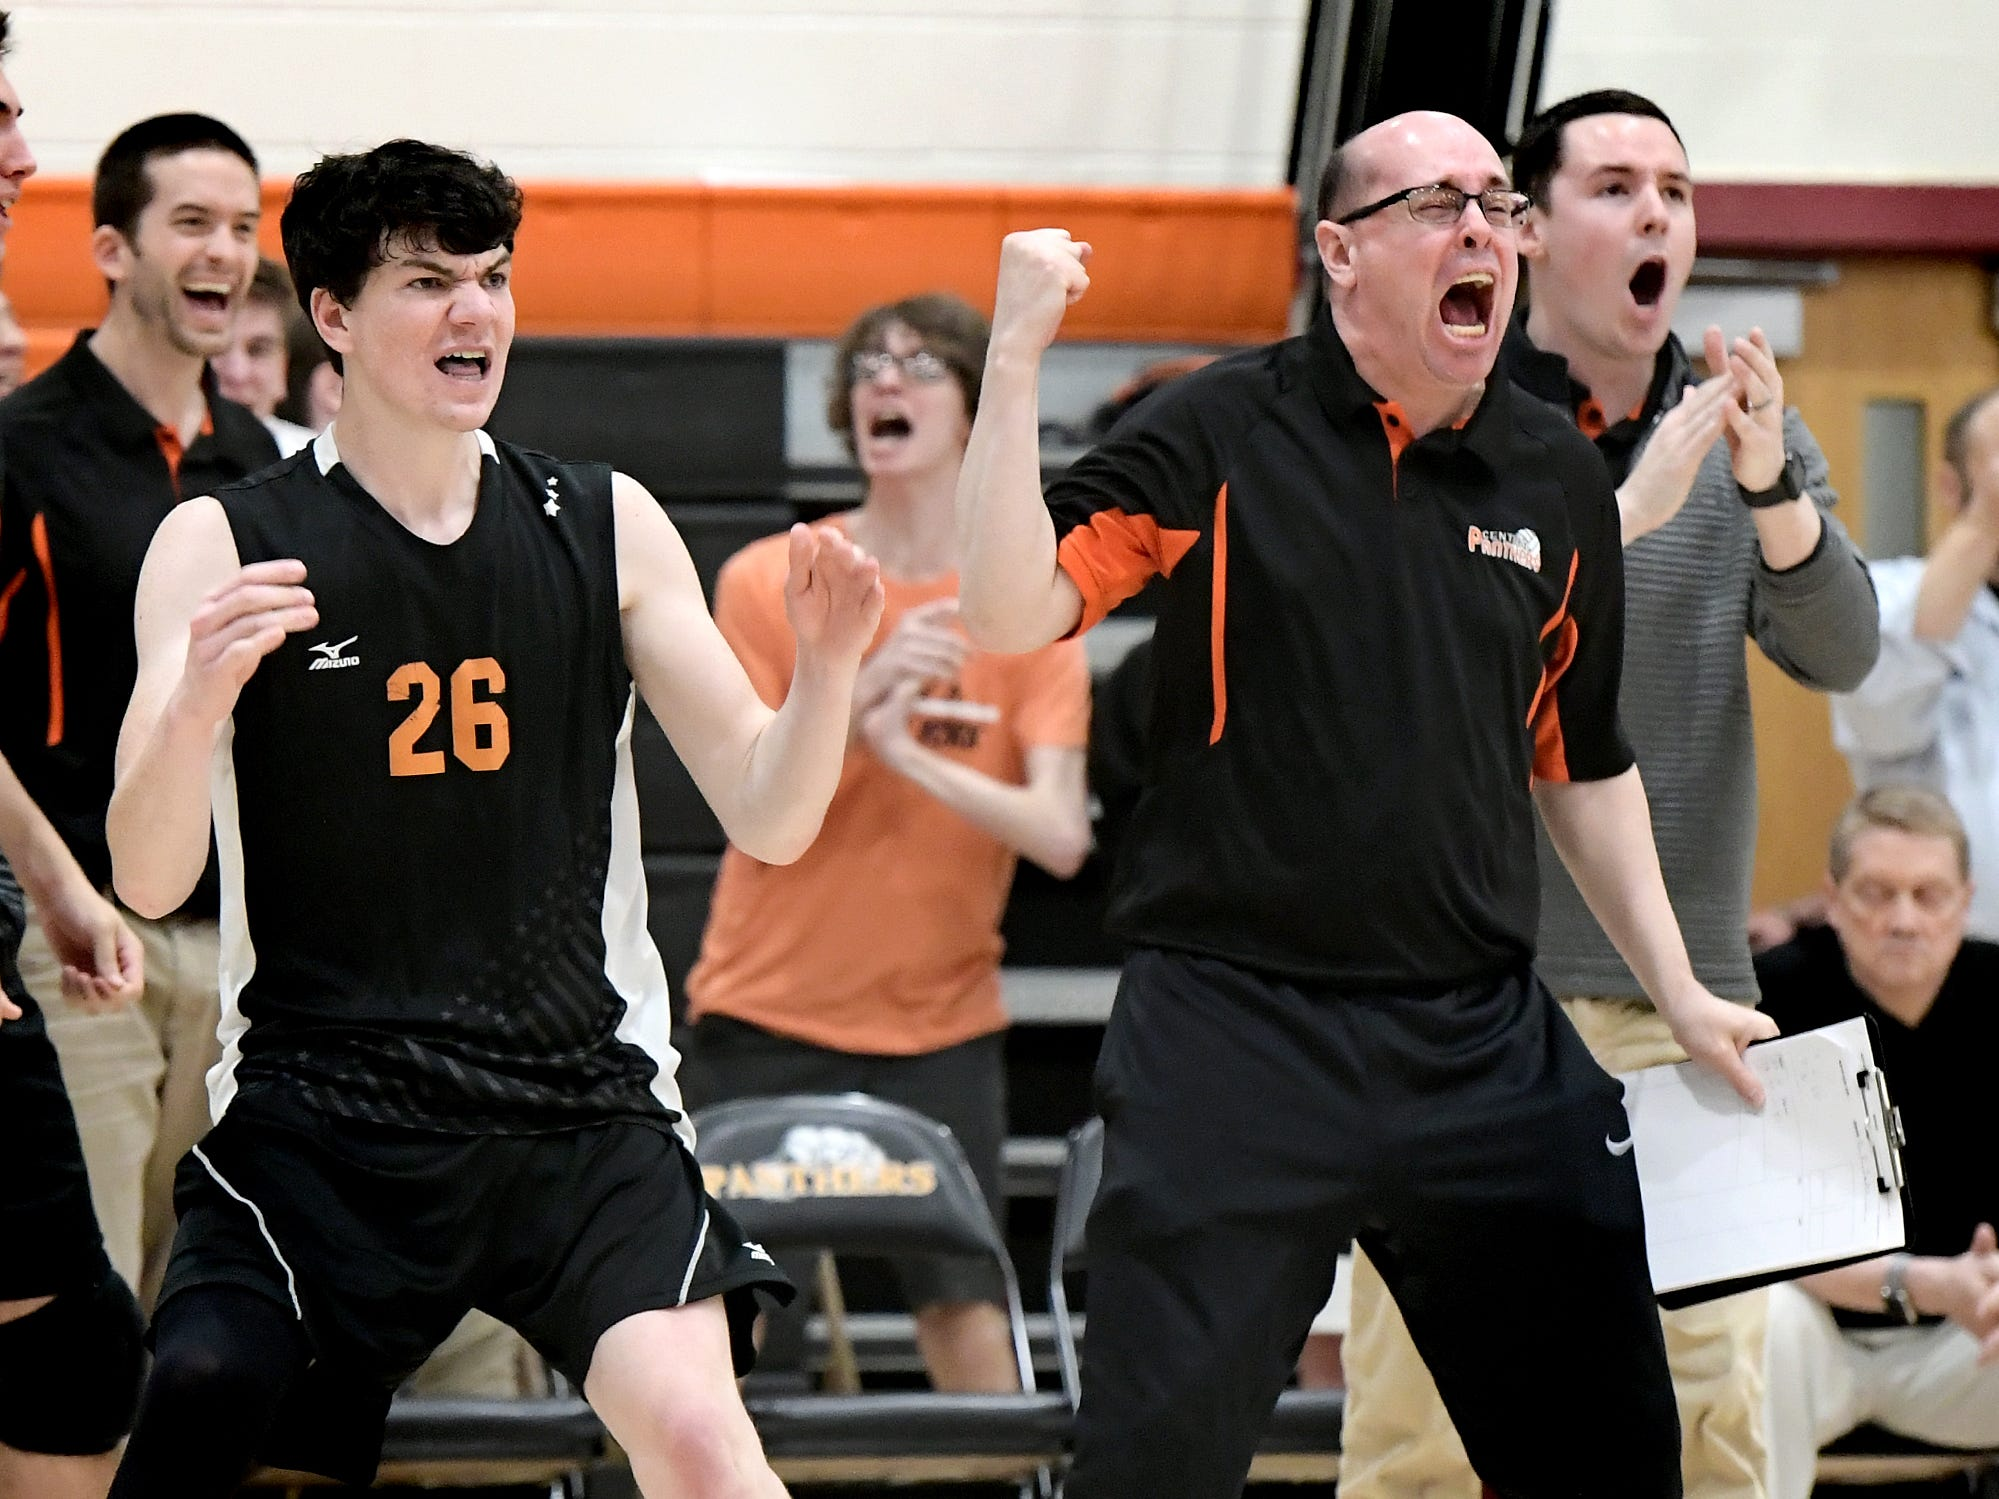 Central York coach Dwayne Warehime and Eric Bowman react during action at against visiting Northeastern Tuesday, May 7, 2019. Northeastern earned the York-Adams League regular-season title with a 3-1 win. Bill Kalina photo